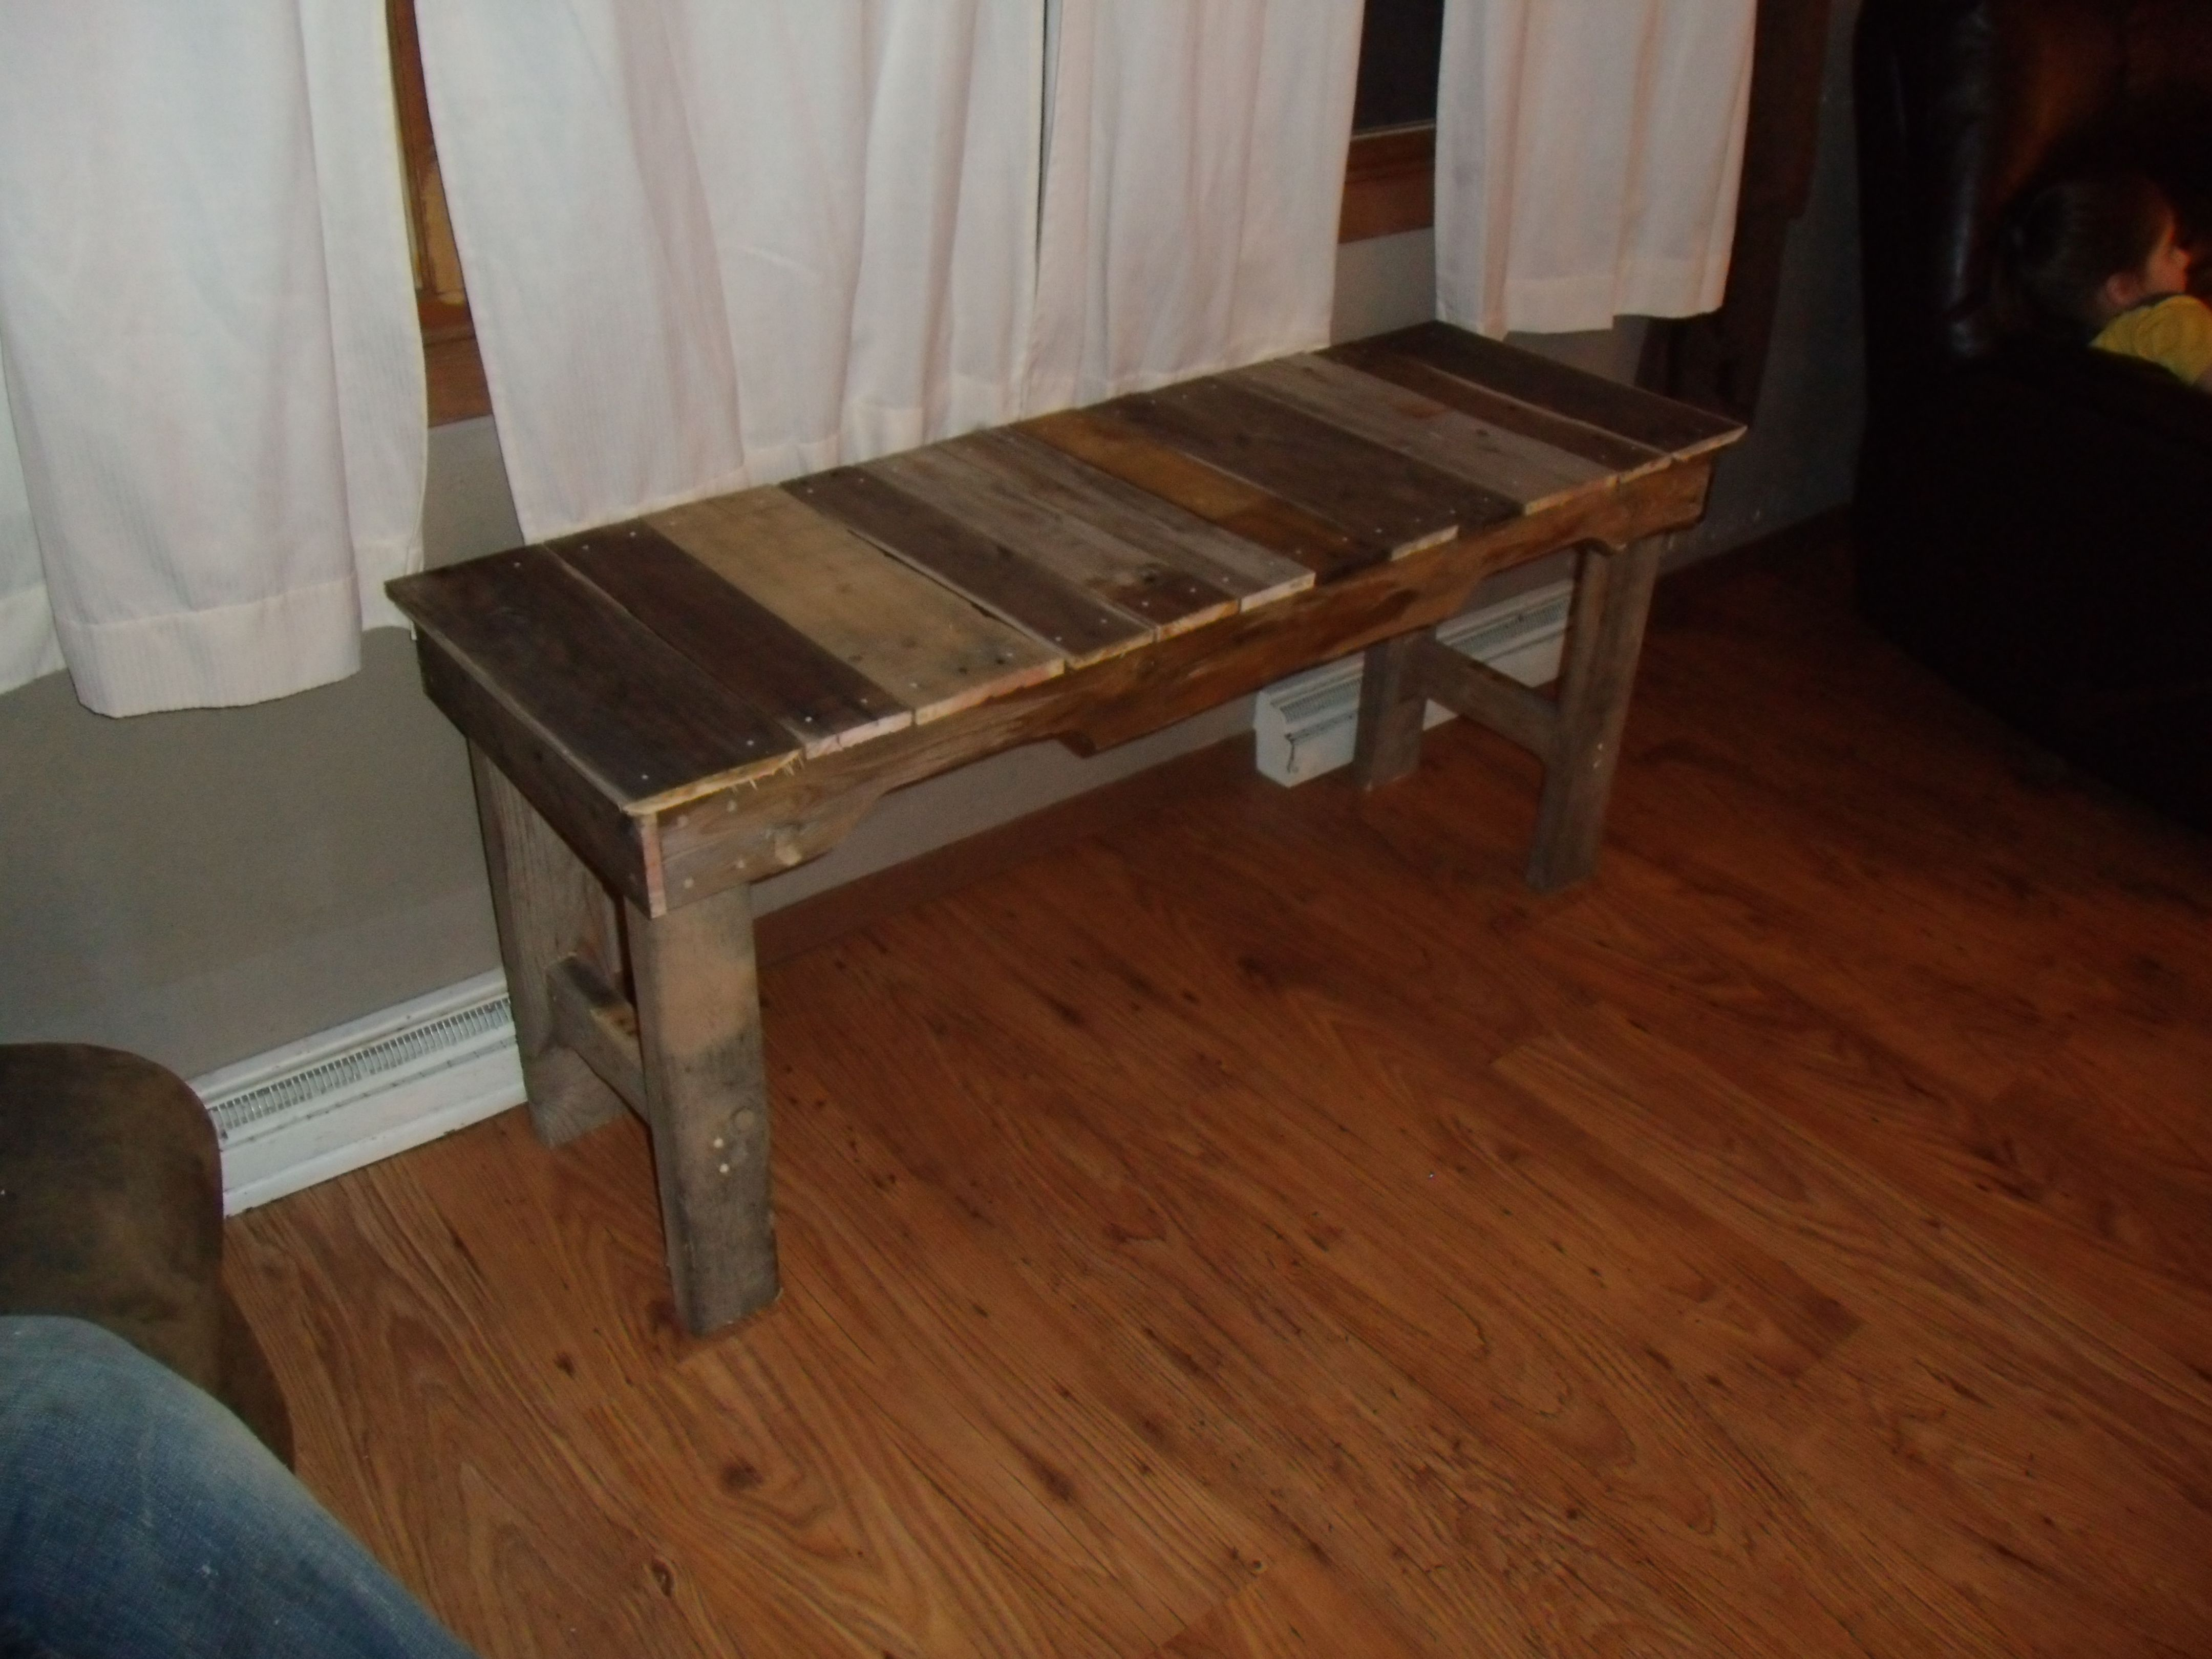 Superb img of Table made out of old wood pallets! WOOD PROJECTS!!!!! Pinterest with #663A1E color and 4320x3240 pixels